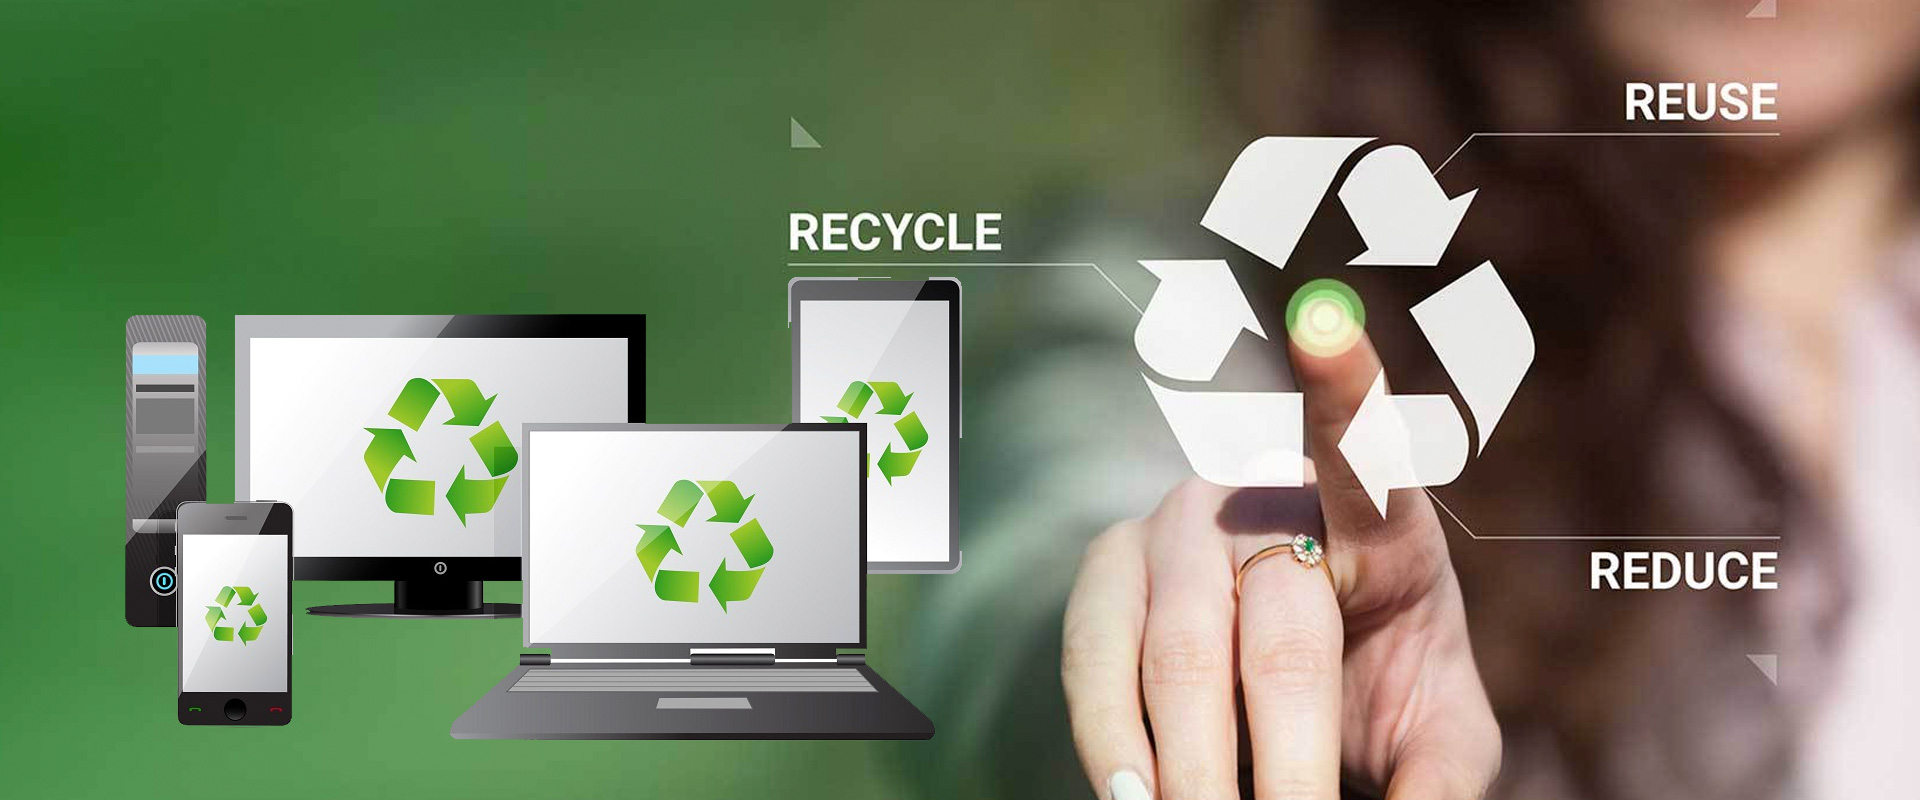 IT Recycling Services- n NYC and NJ BRSmove